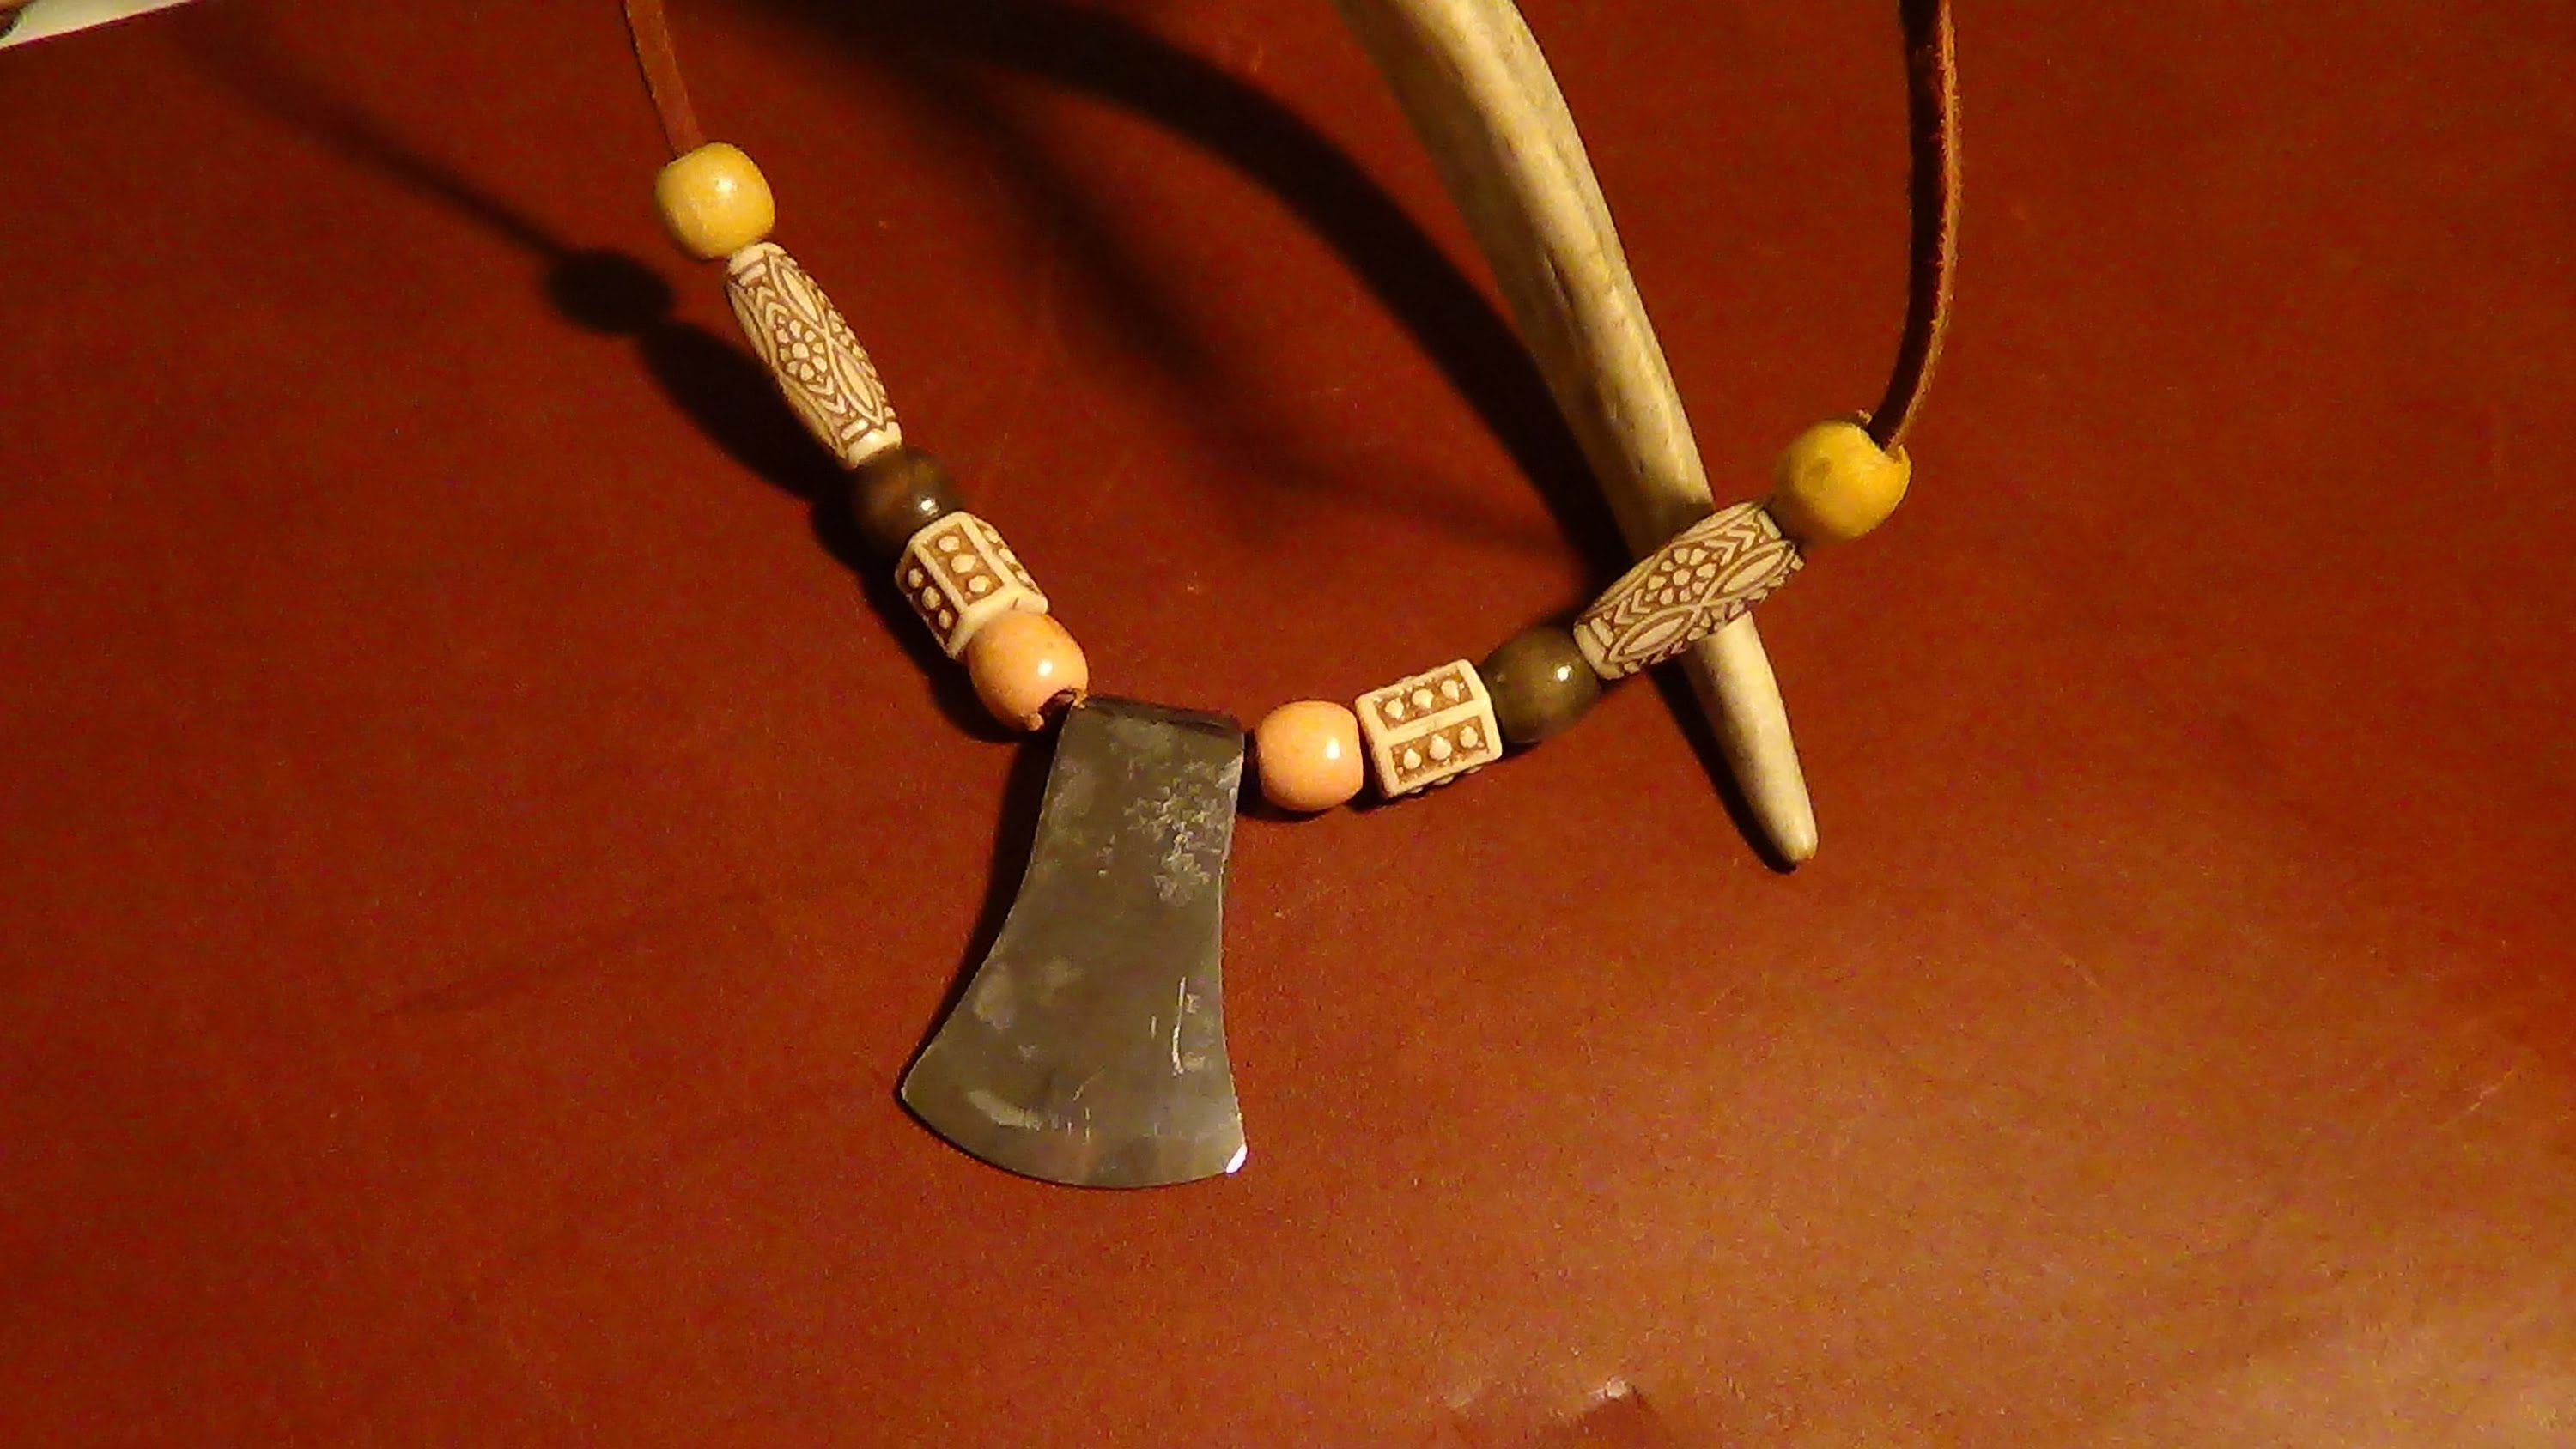 Cody Lundin Style - Survival Necklace - A fire steel with